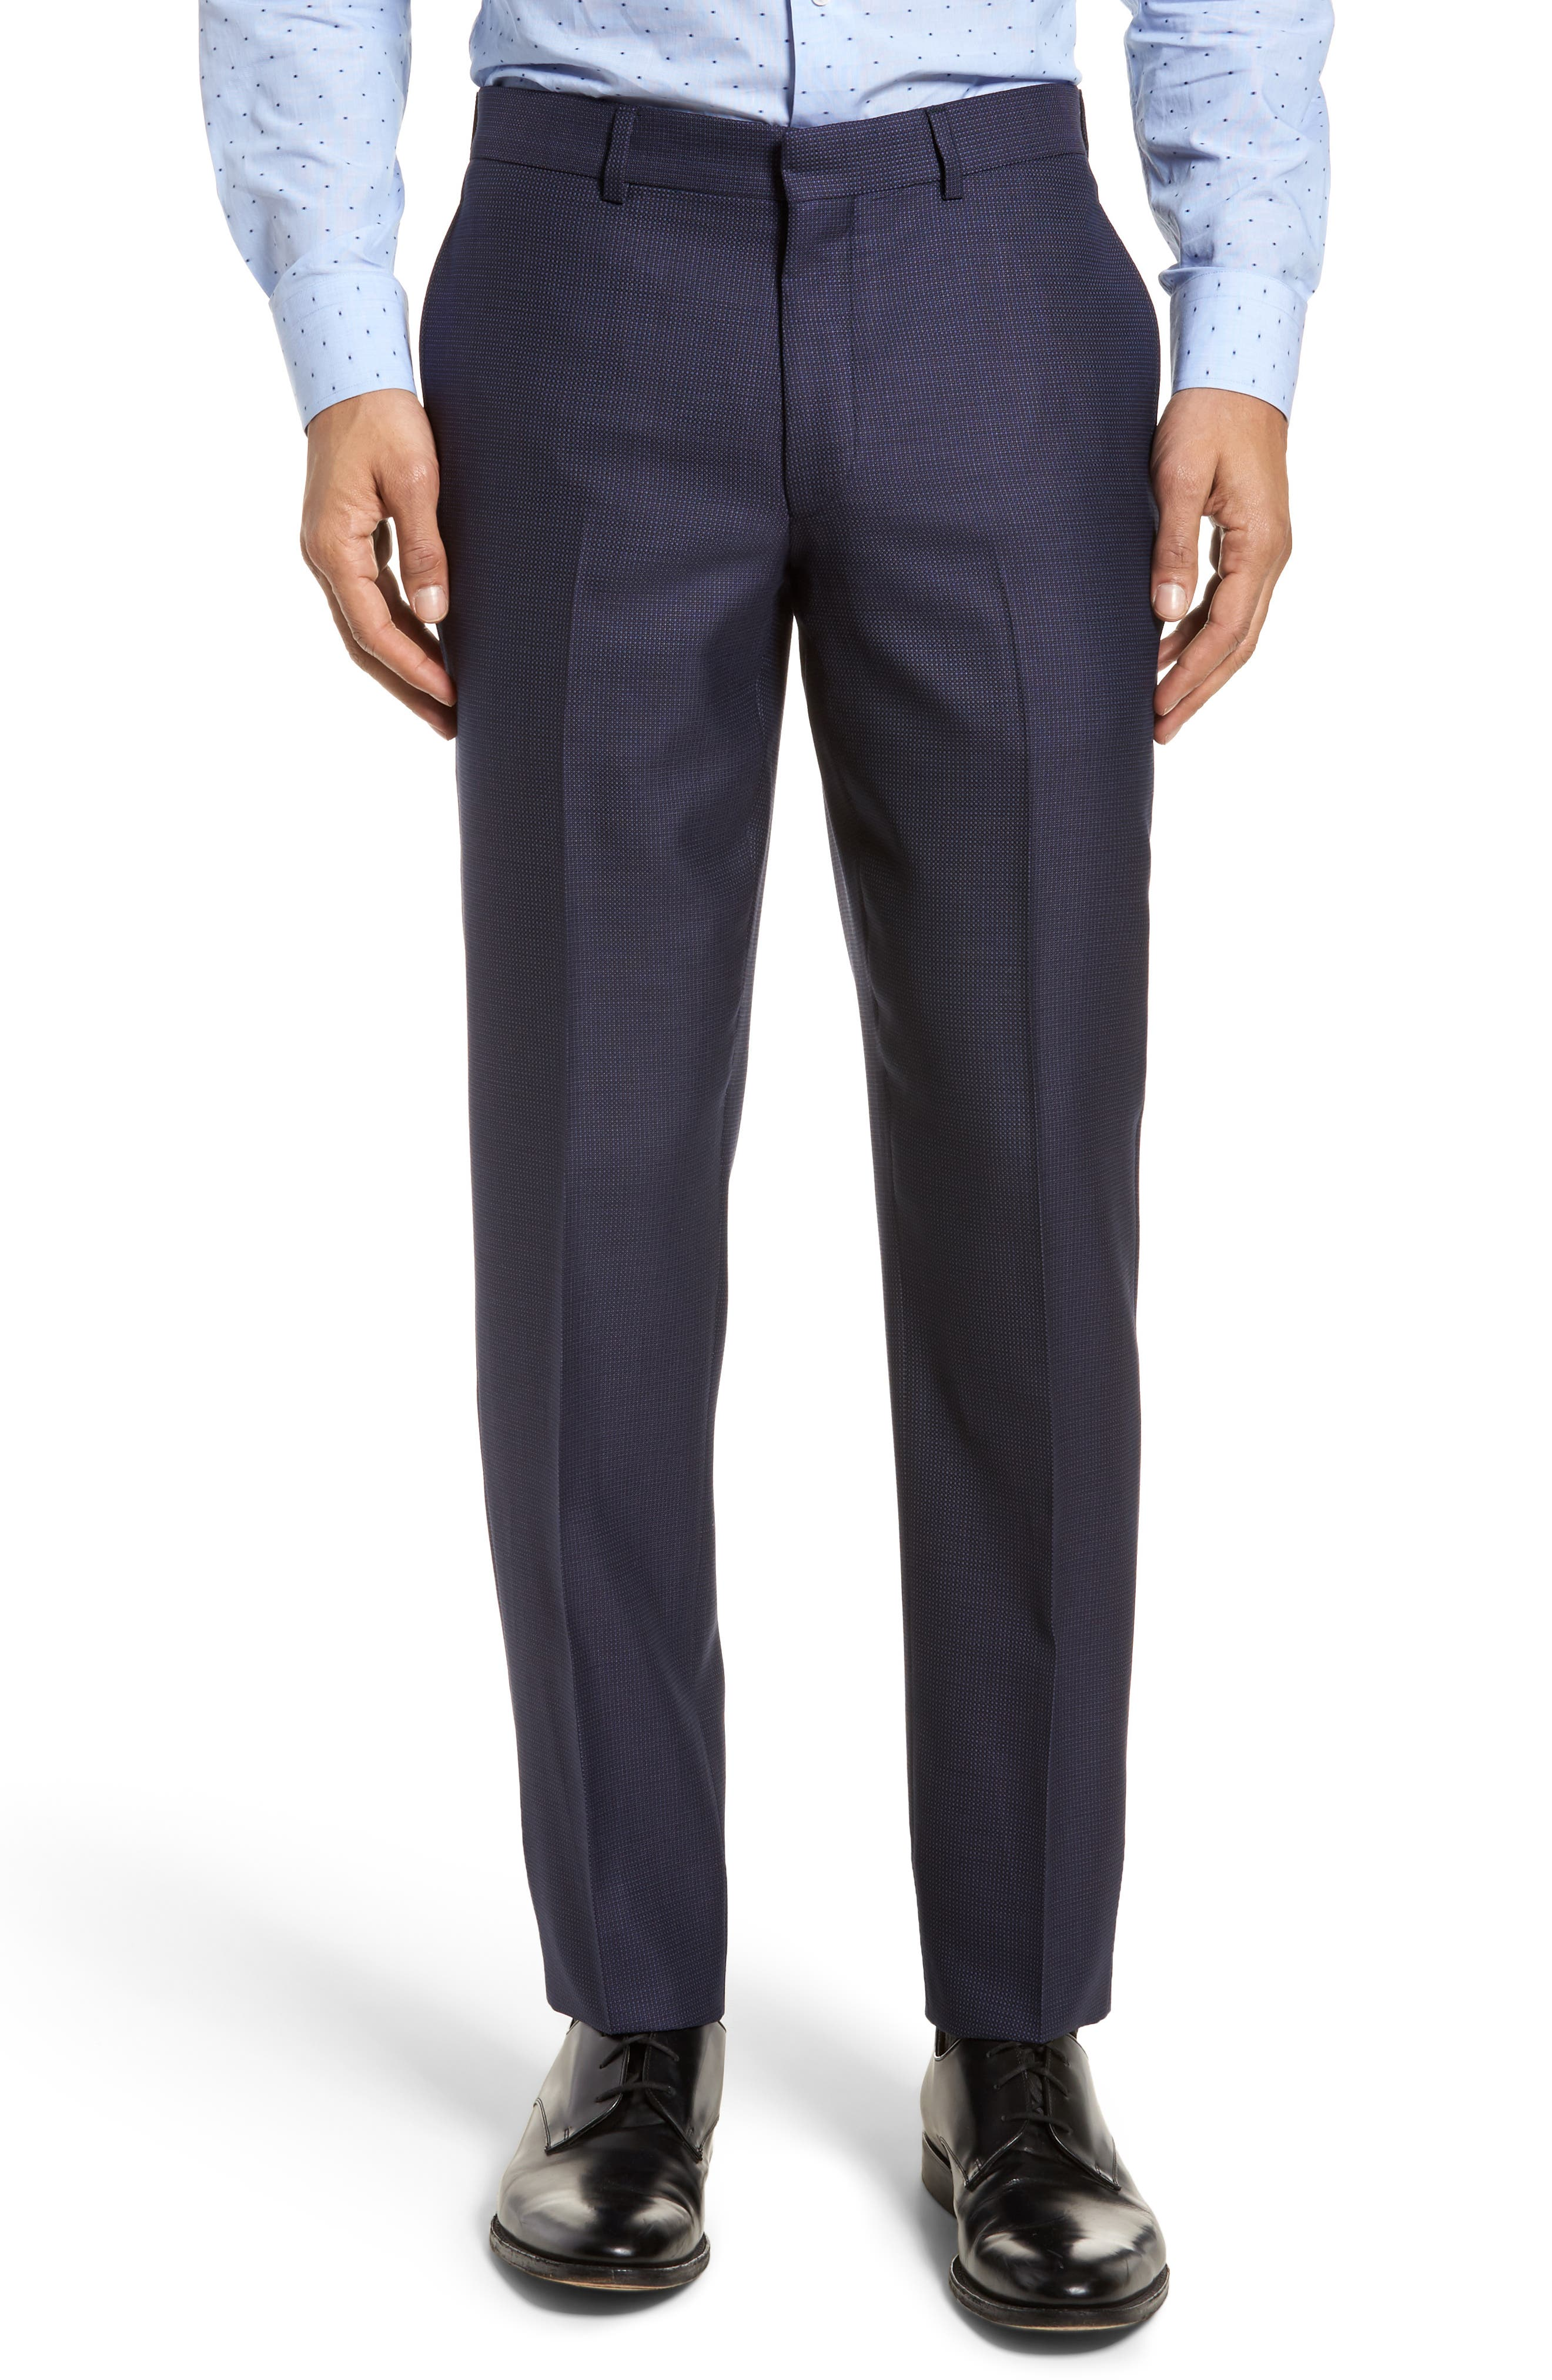 Roger Extra Slim Fit Solid Wool Suit,                             Alternate thumbnail 6, color,                             410